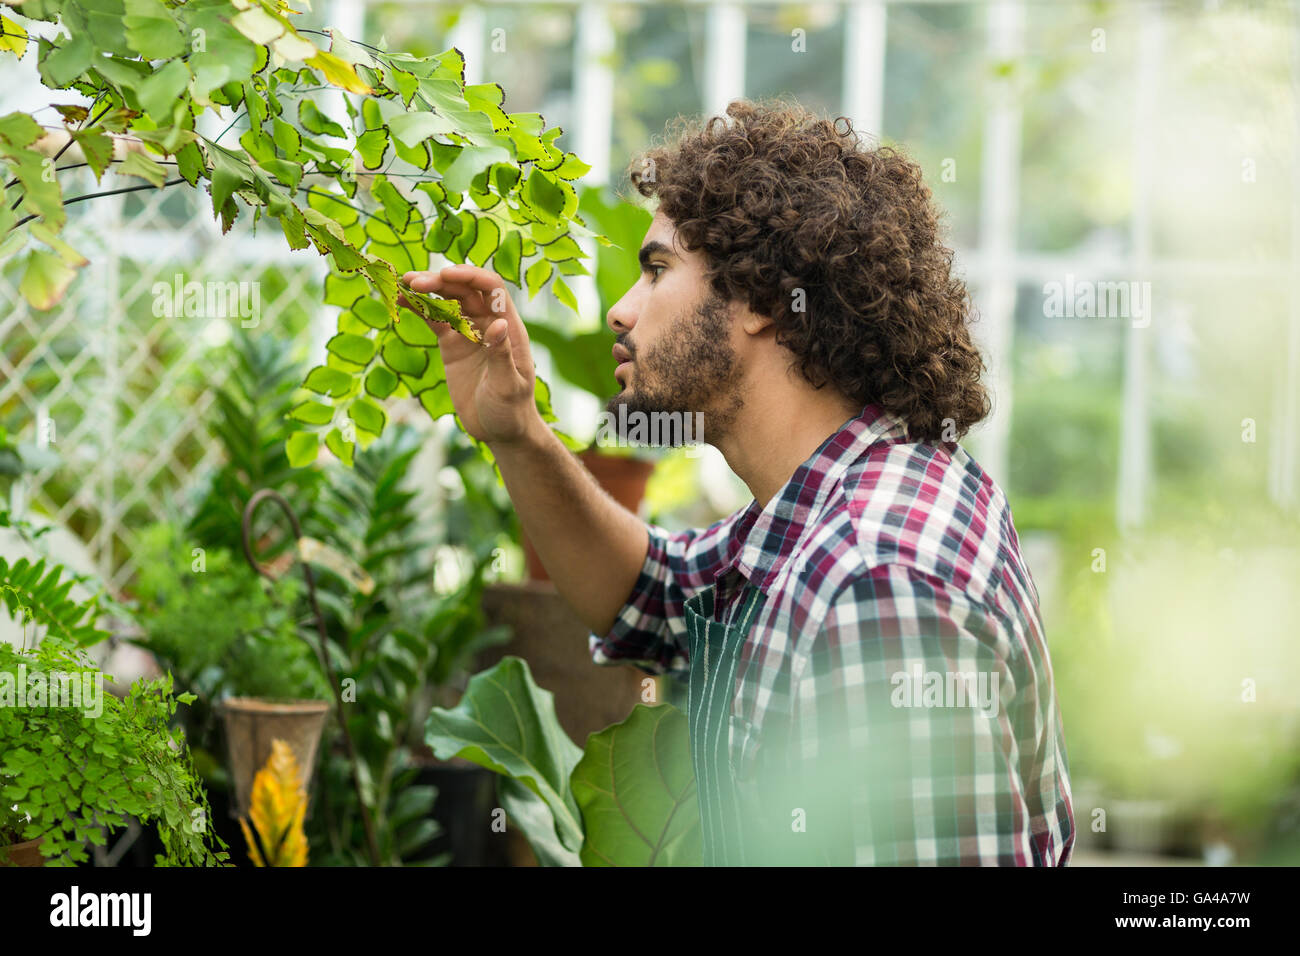 Male gardener inspecting plants at greenhouse - Stock Image